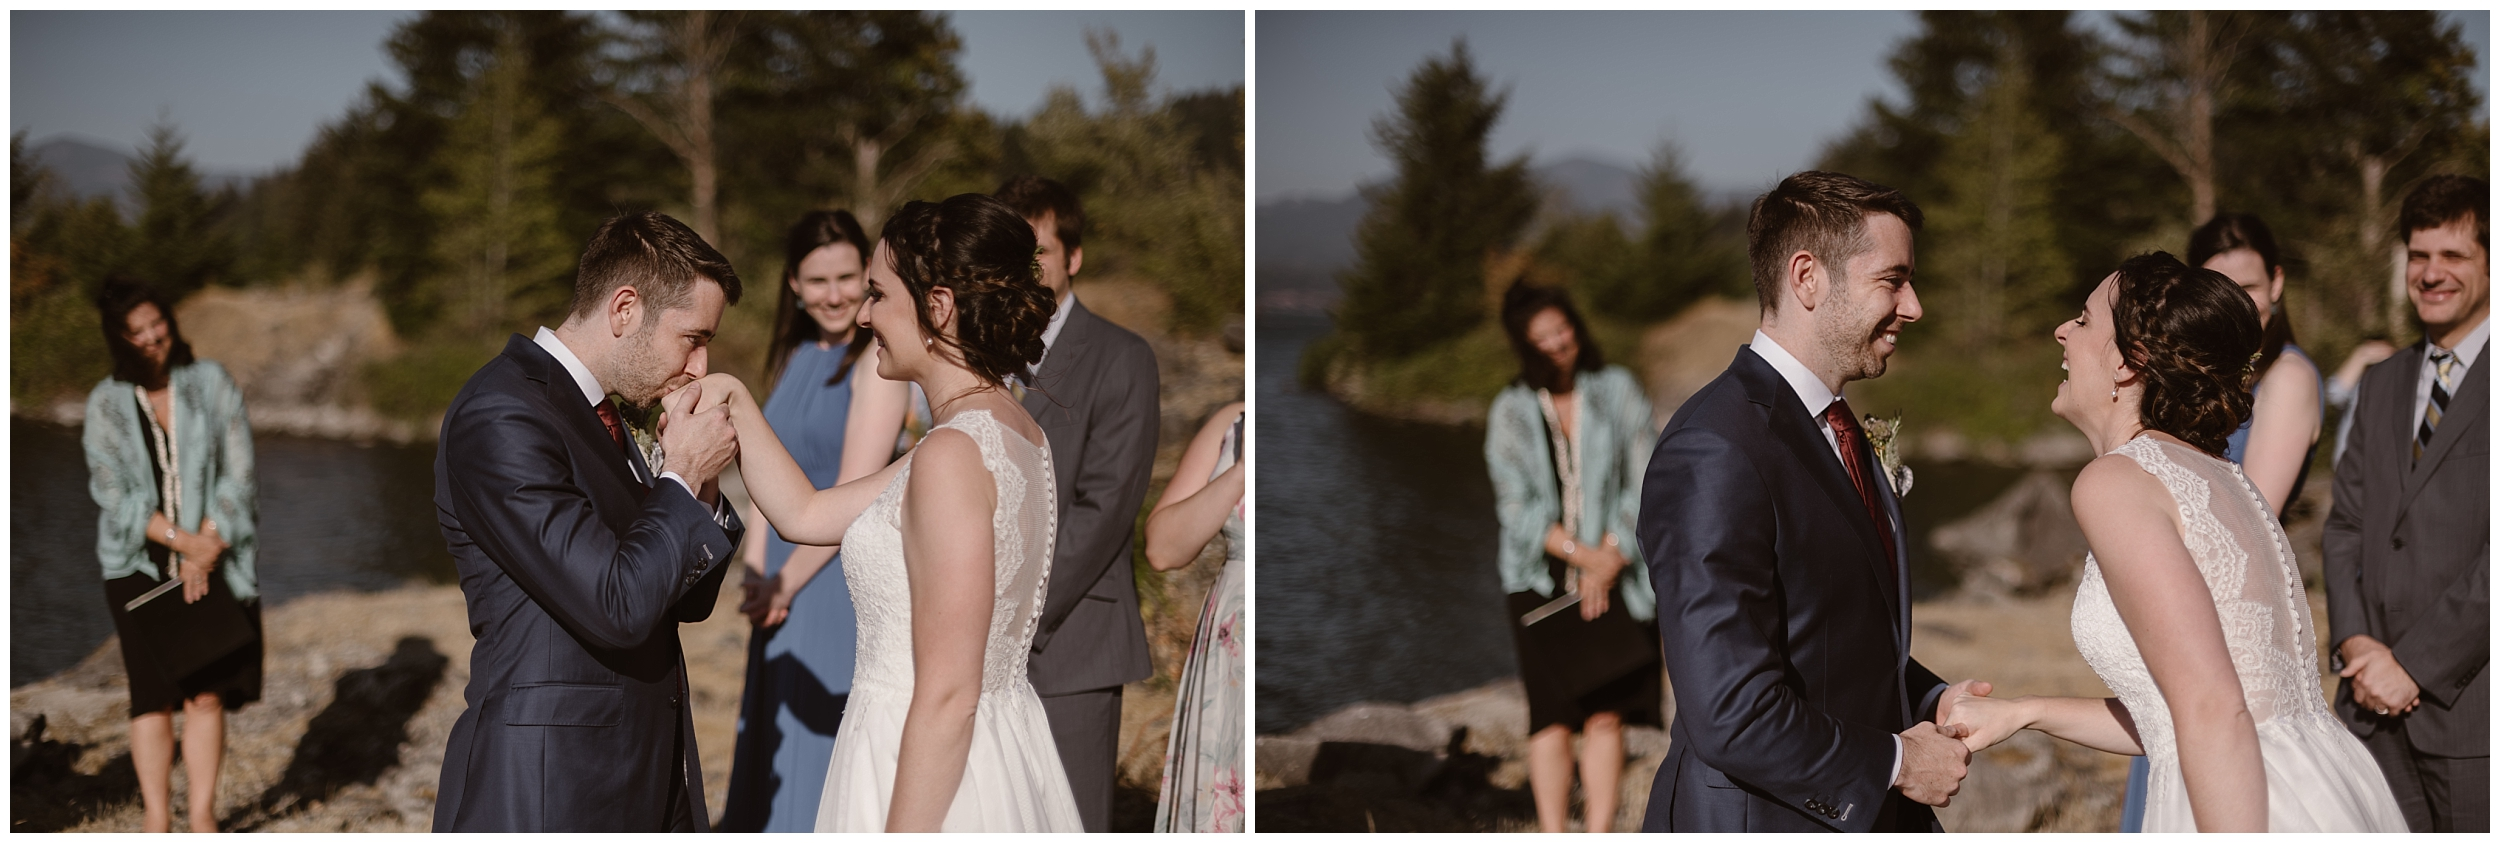 These side-by-side elopement pictures show Lauryn and David in the moments before their Columbia River Gorge elopement ceremony. David takes Lauryn's hand and kisses it in the photo on the left, and she leans in close to laugh with him in the photo on the right.